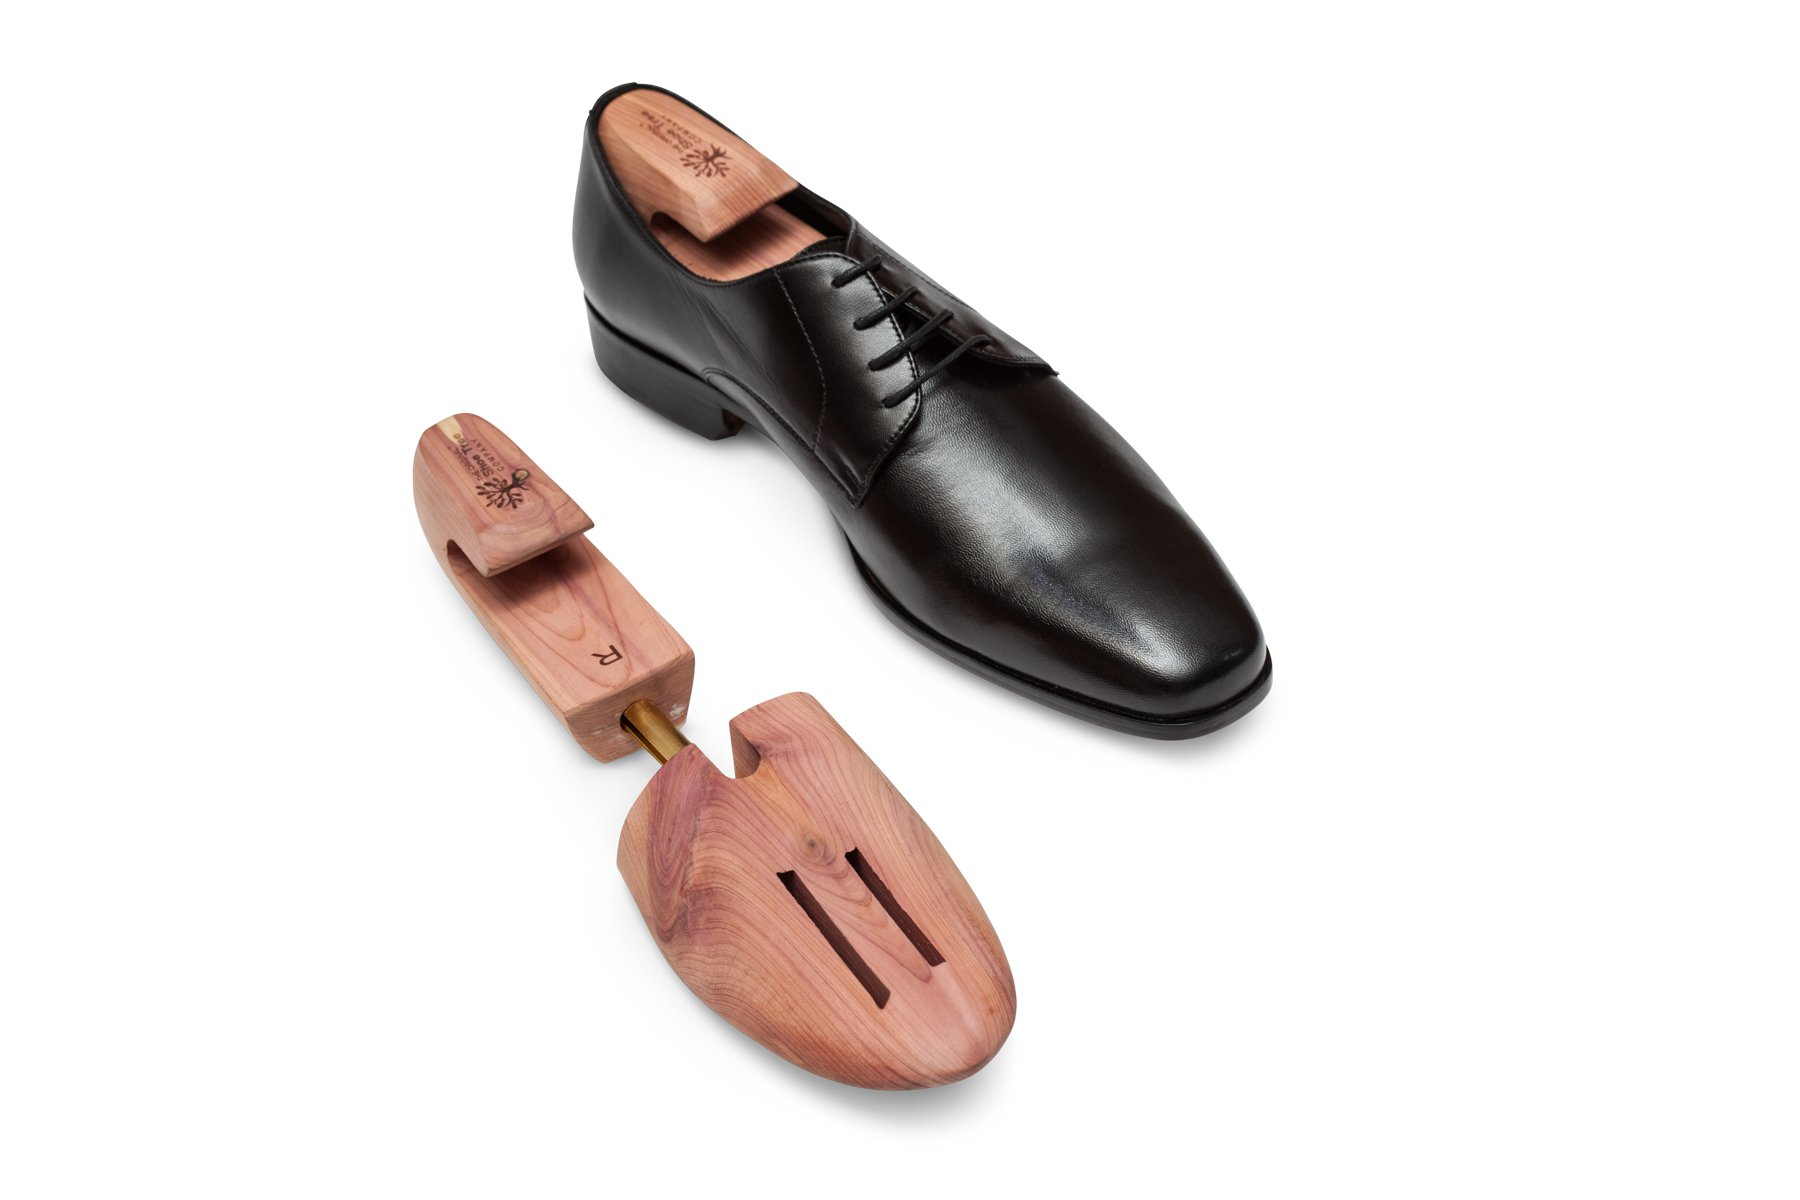 The Original Shoe Tree Company Fresh Cedar Shoe Tree 2-pack (for 2 pairs of shoes) Medium by The Original Shoe Tree Company (Image #4)